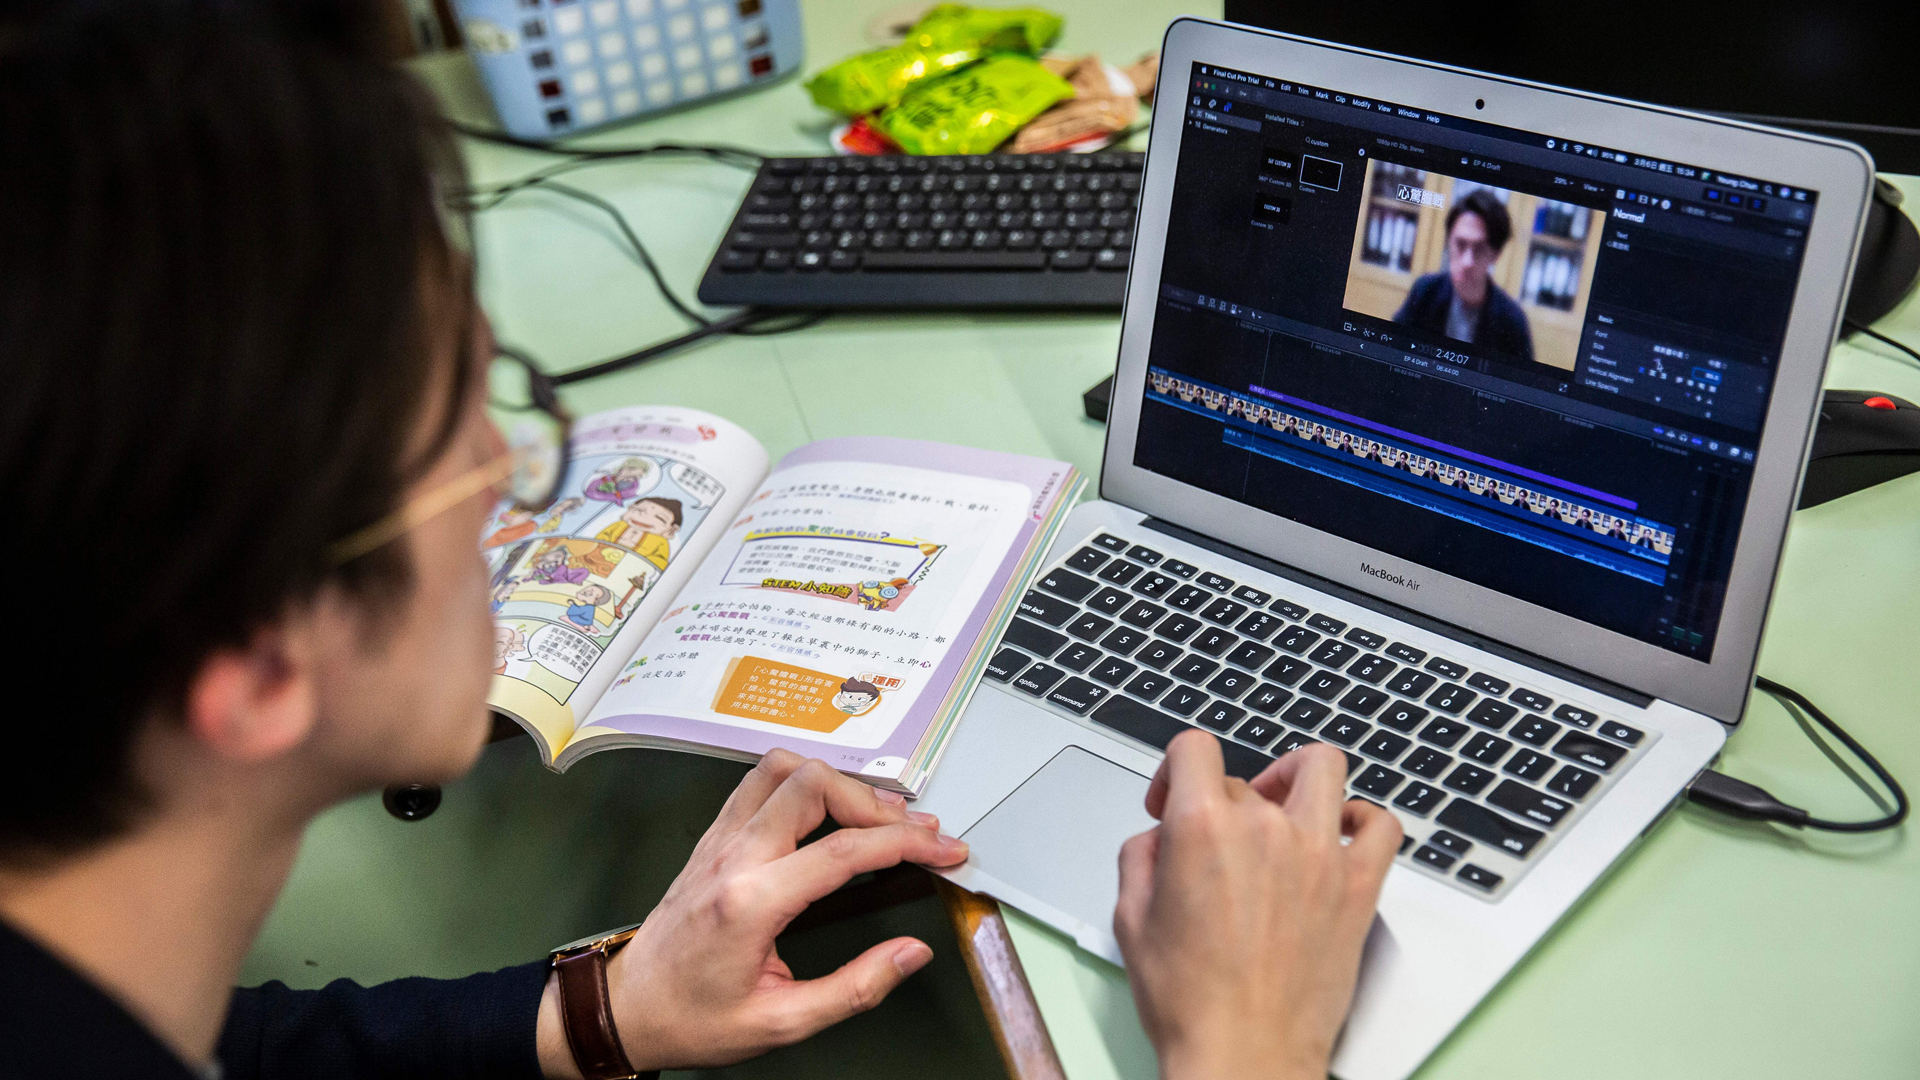 In this photo taken on March 6, 2020, primary school teacher Billy Yeung edits a video lesson he recorded in an empty classroom, for his students who have had their classes suspended due to the COVID-19 coronavirus, in Hong Kong. (Isaac Lawrence/AFP/Getty Images)